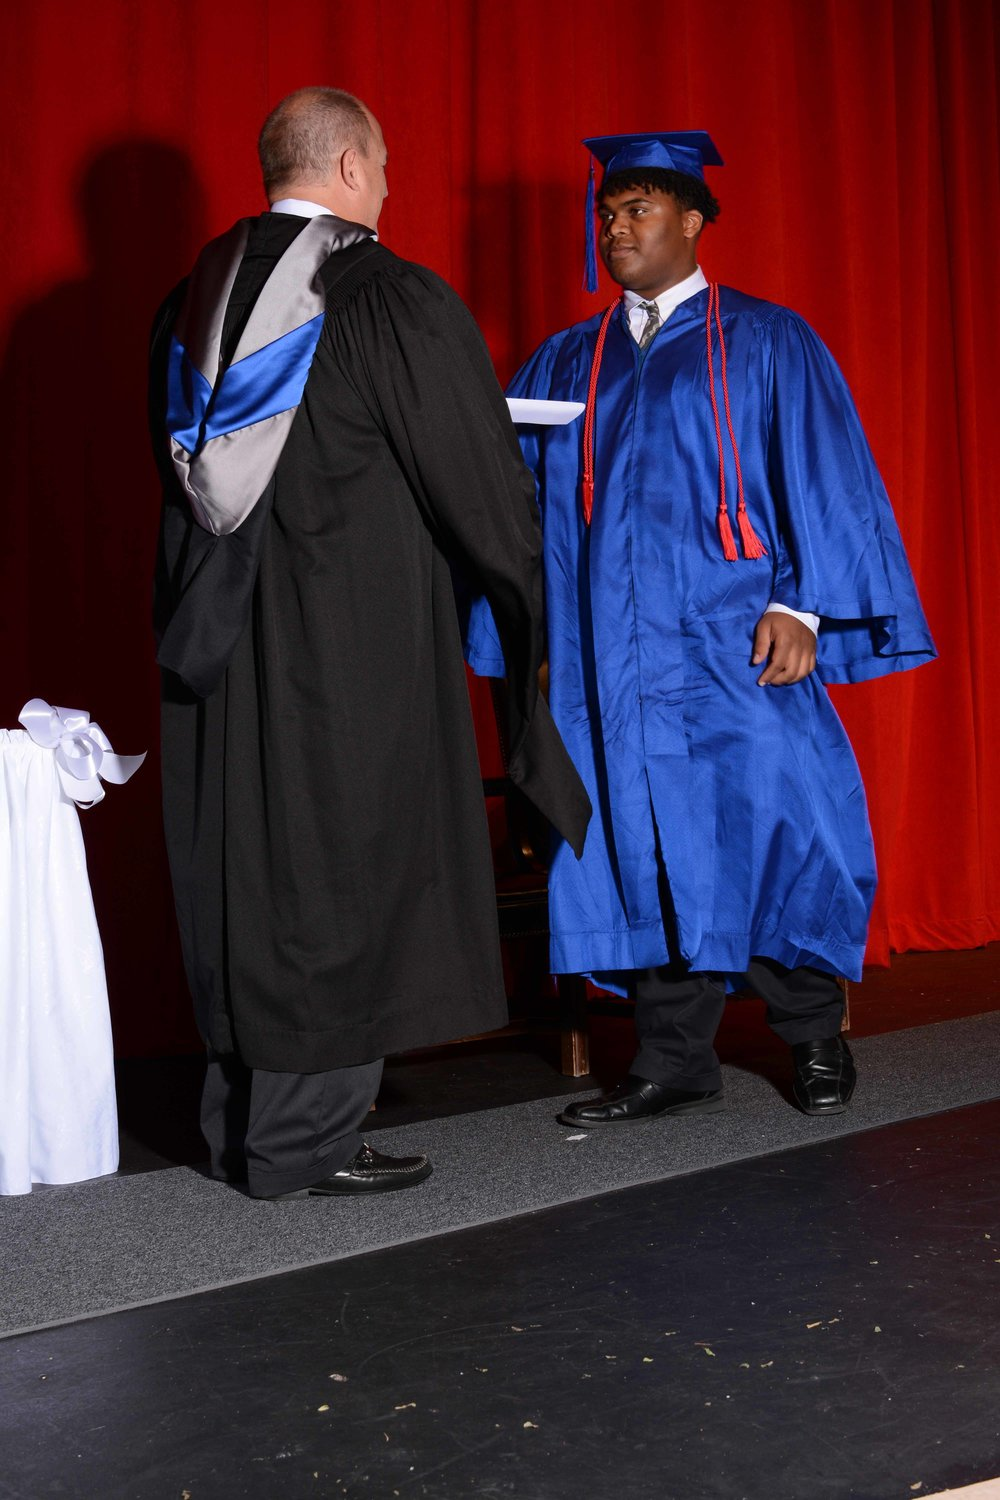 May15 HardingGraduation63.jpg